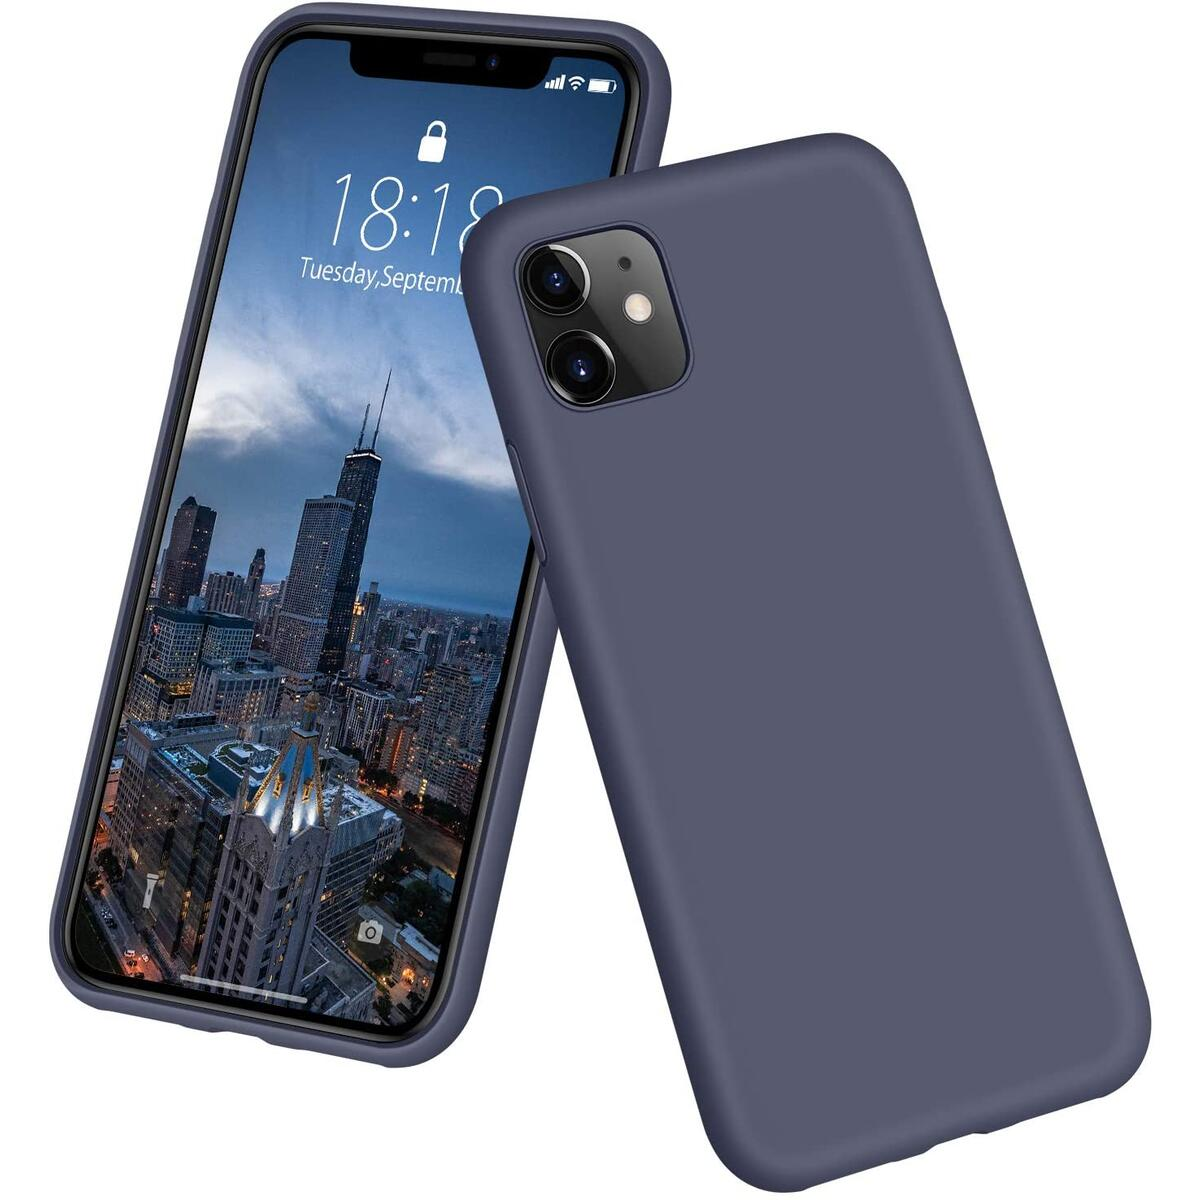 NIOBUNNY CASE for iPhone 11 Pro, Ultra-Thin & Slim Fit Flexible Soft TPU Case (All Colors)